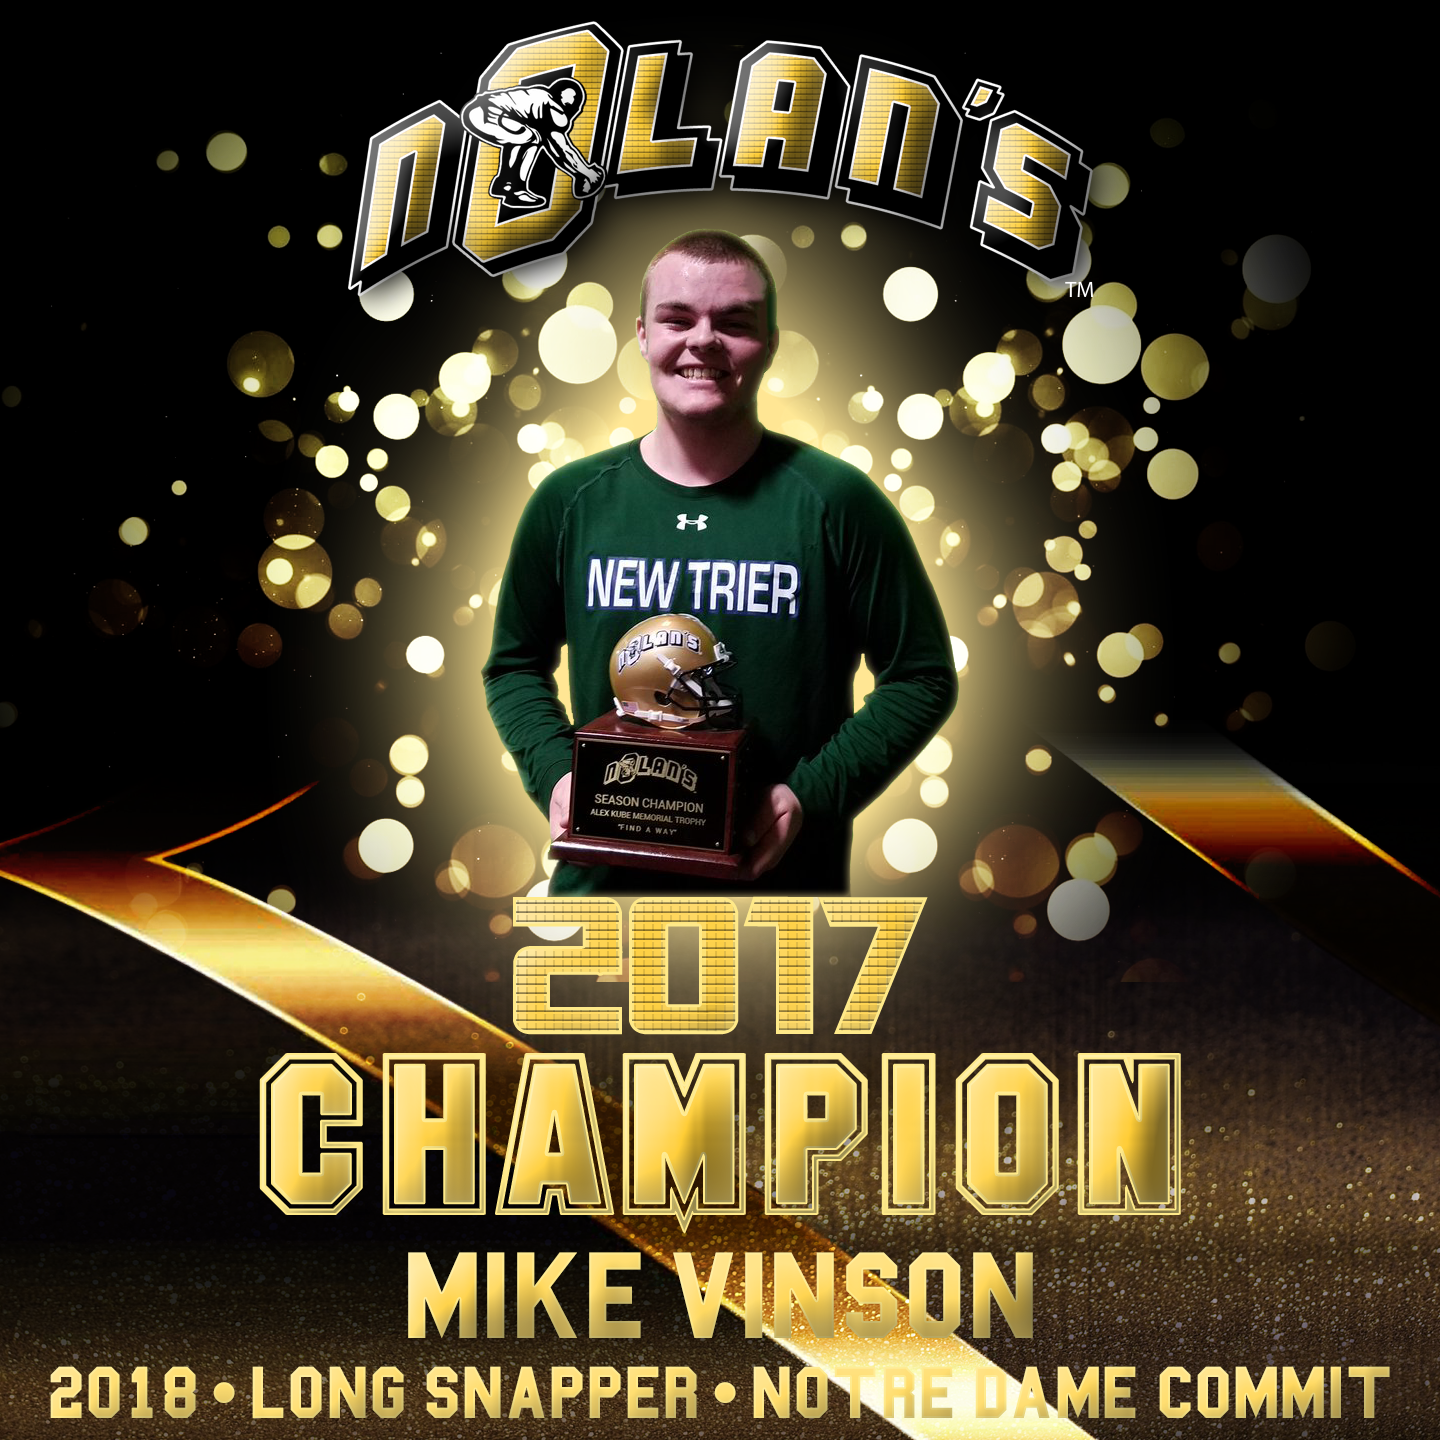 mike-vinson-champ-2017.png